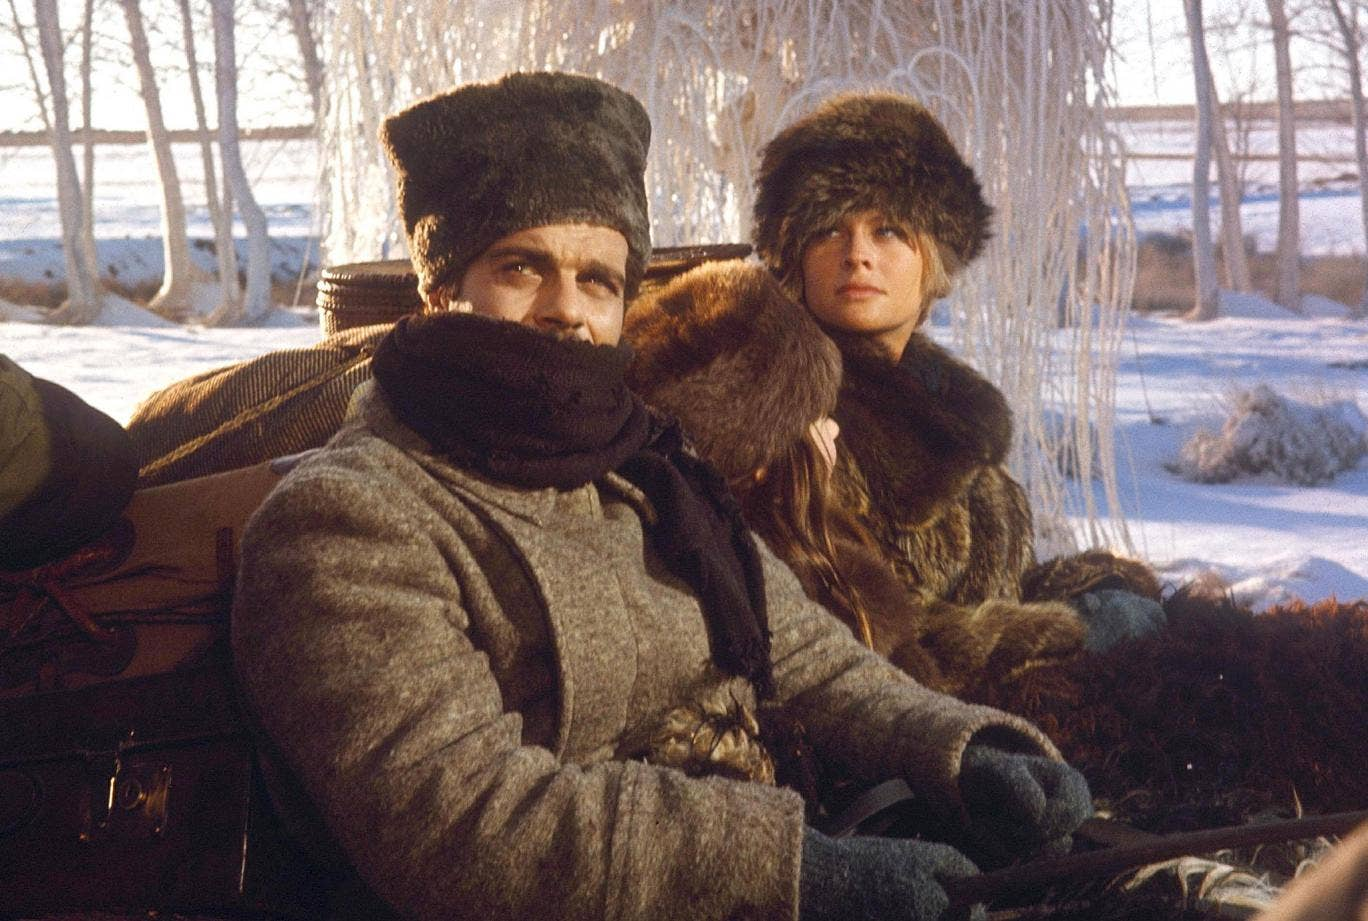 Fur fight: the film version of 'Dr Zhivago', starring Omar Sharif and Julie Christie, is the eighth highest grossing movie of all time